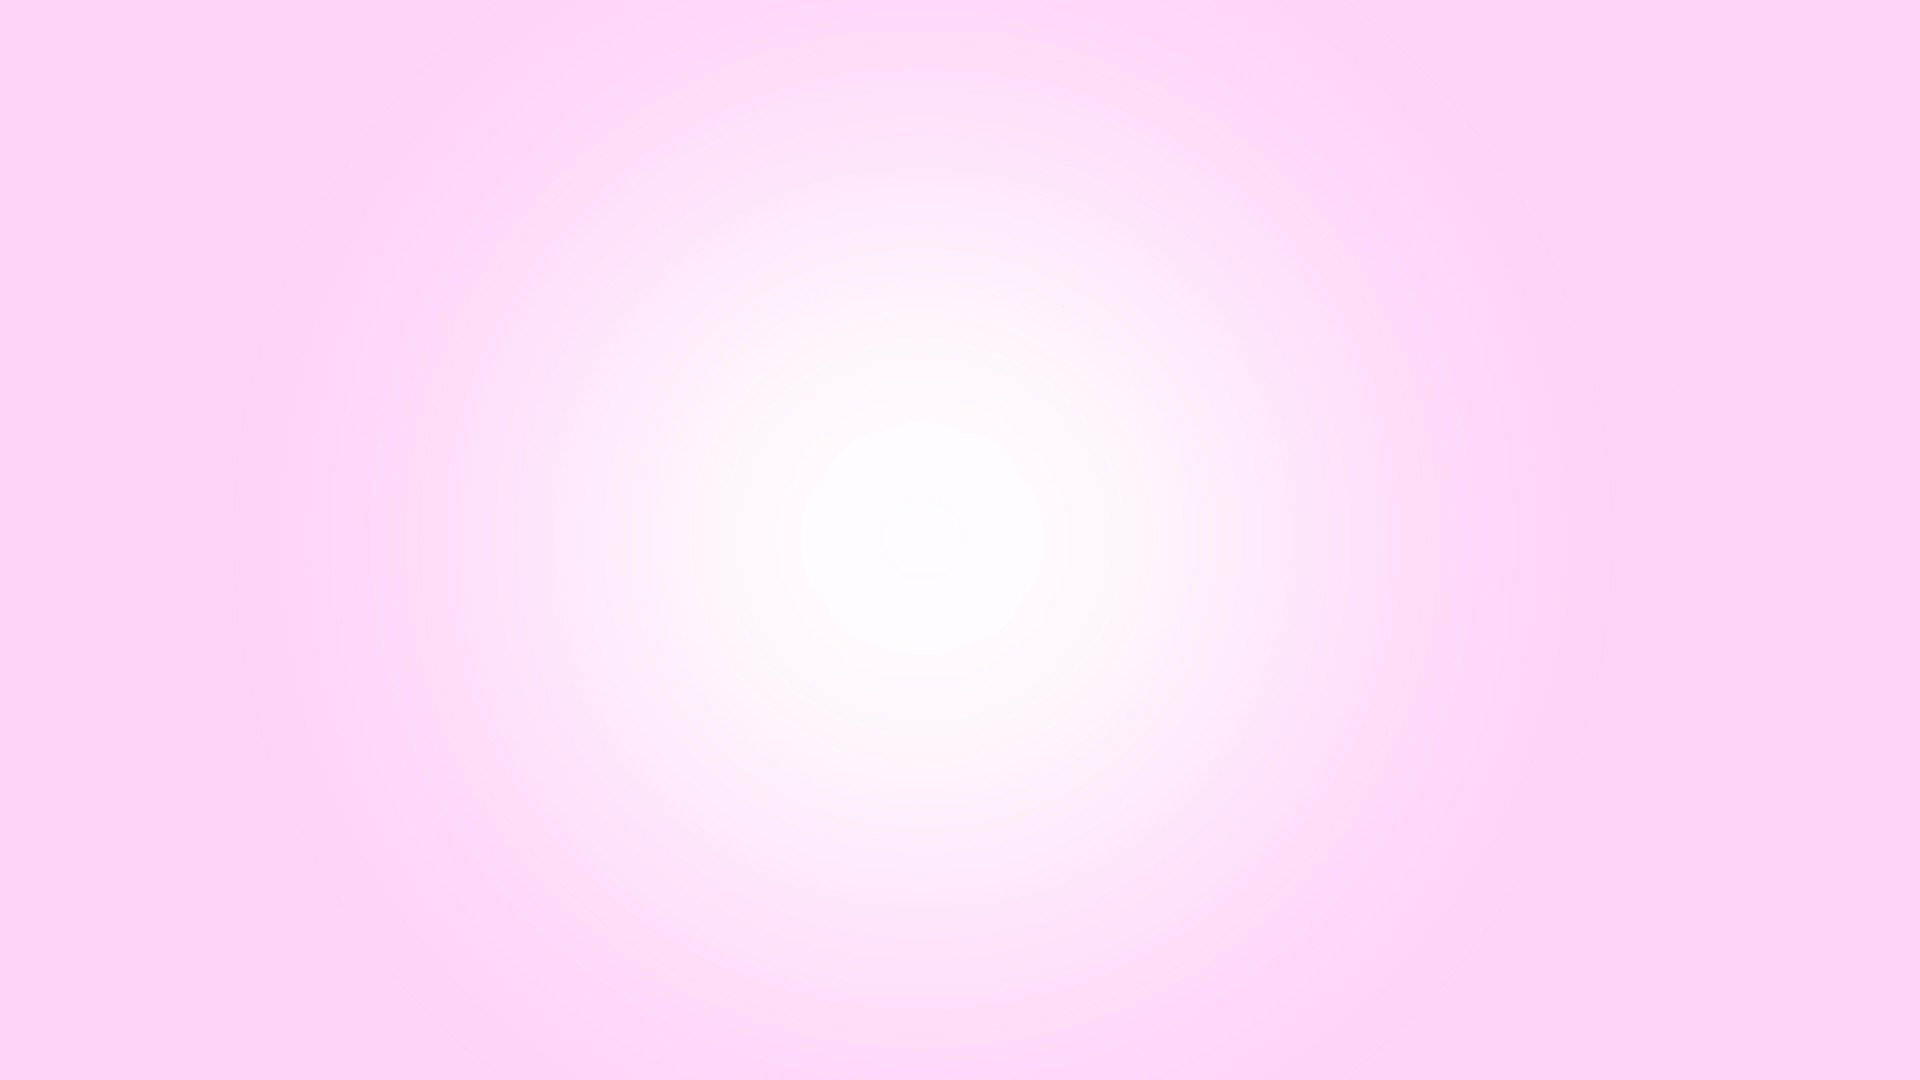 Res: 1920x1080, Pink And White Photo #NY662